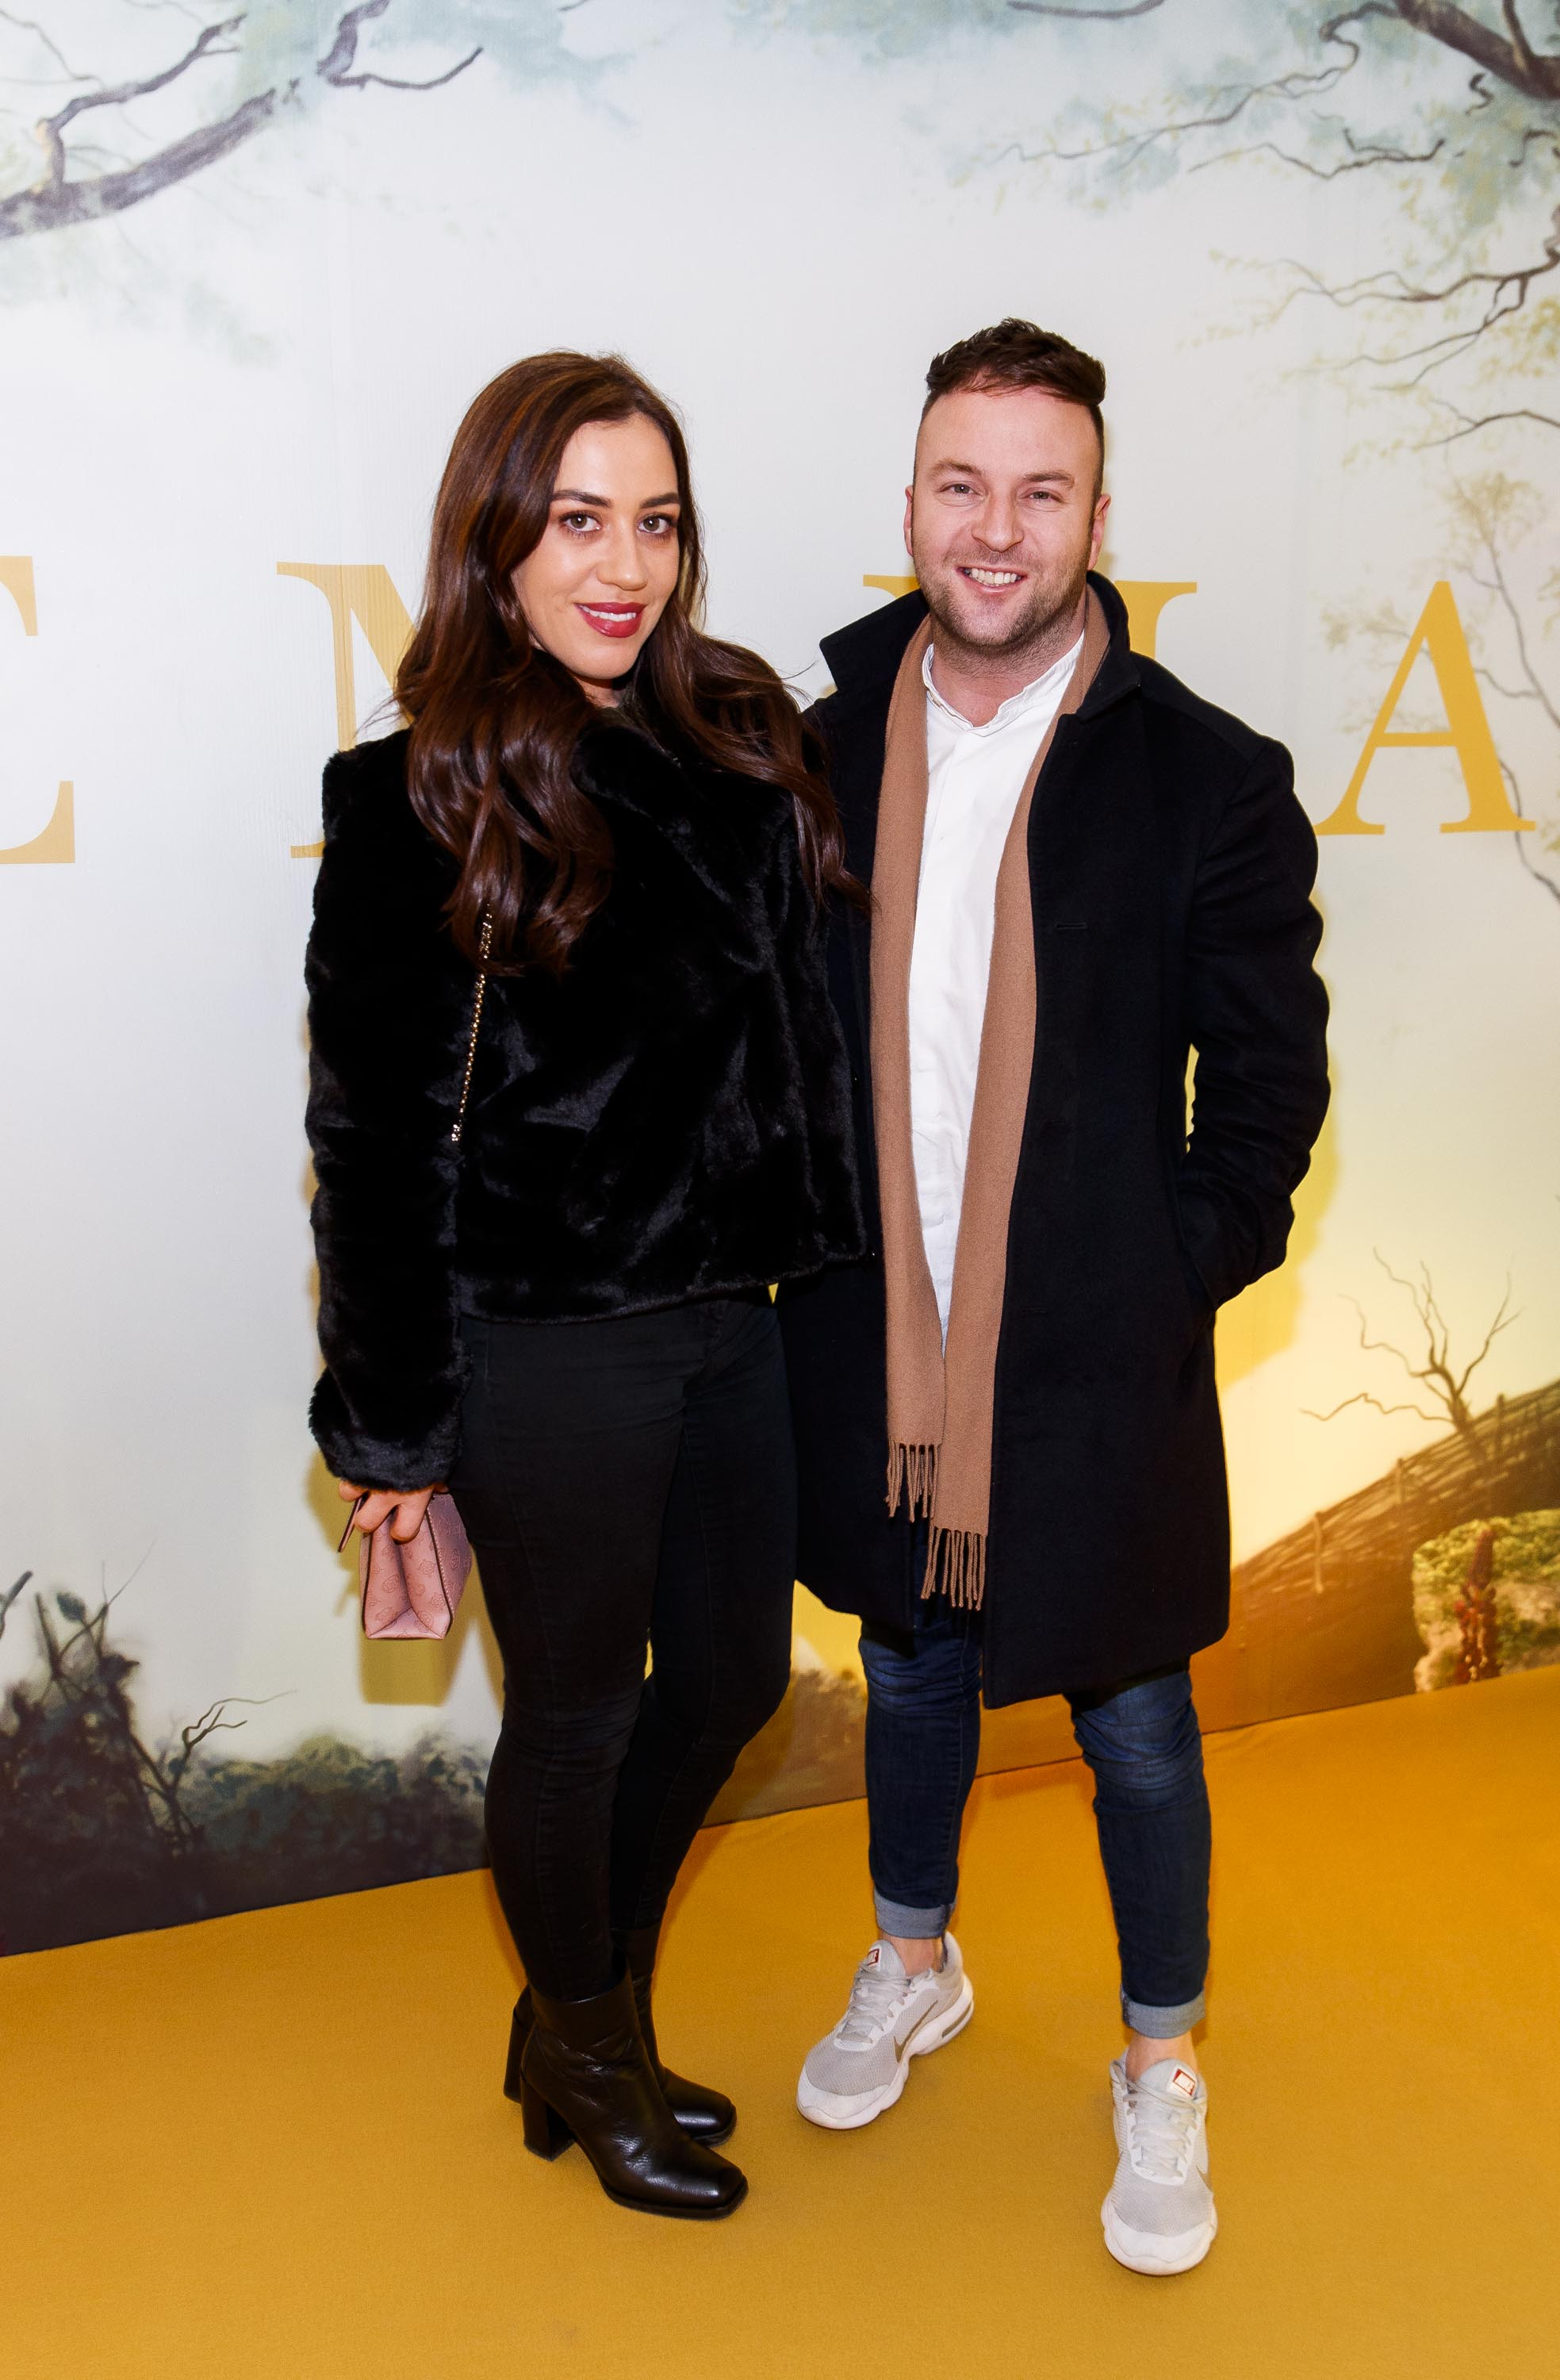 Niamh Gafney and Wayne Lawlor pictured at a special preview screening of EMMA, a delicious new adaptation of Jane Austen's beloved comedy, at Light House Cinema, Dublin Picture Andres Poveda